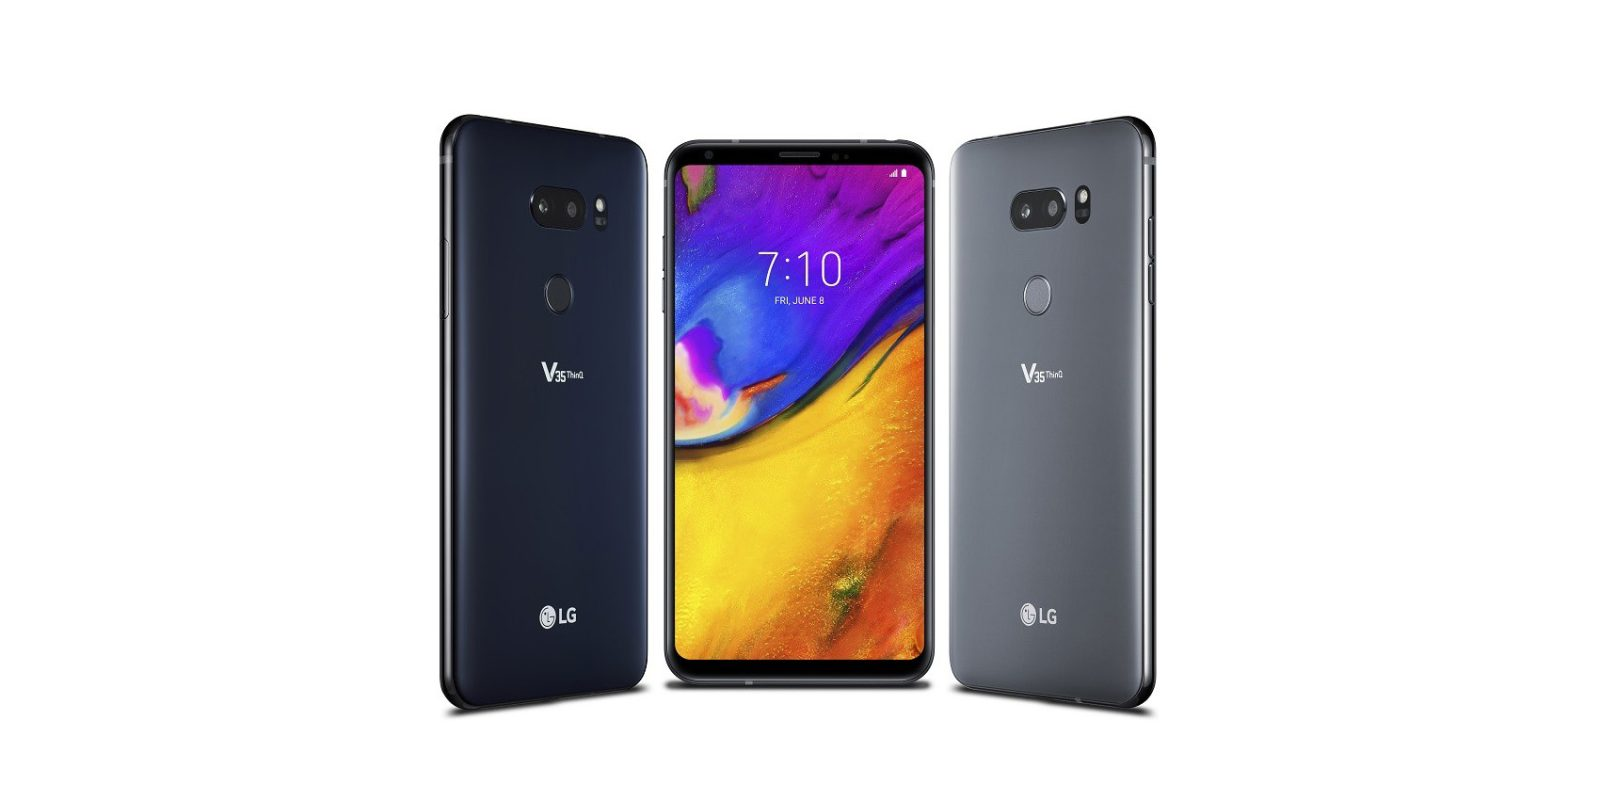 US LG V35 ThinQ now receiving Android Pie update - 9to5Google